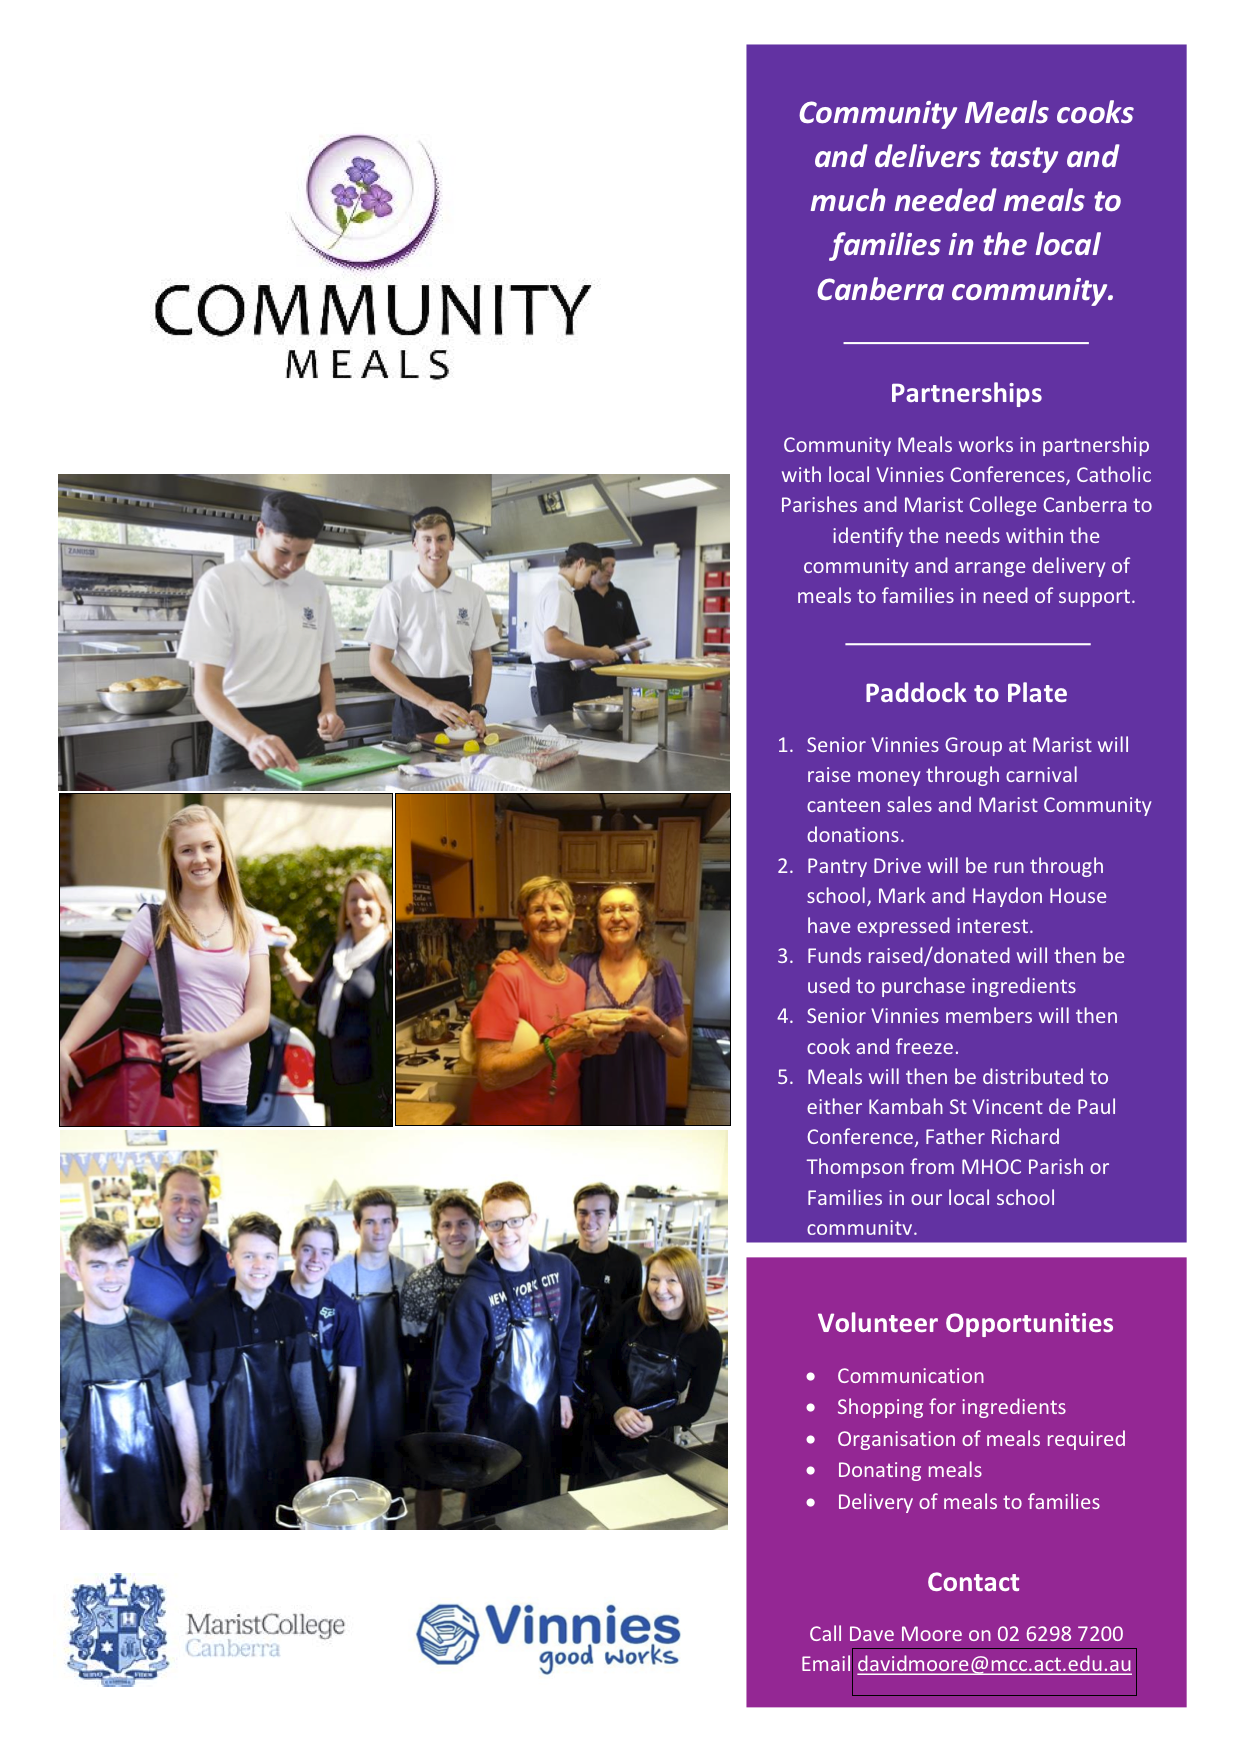 Community Meals flyer